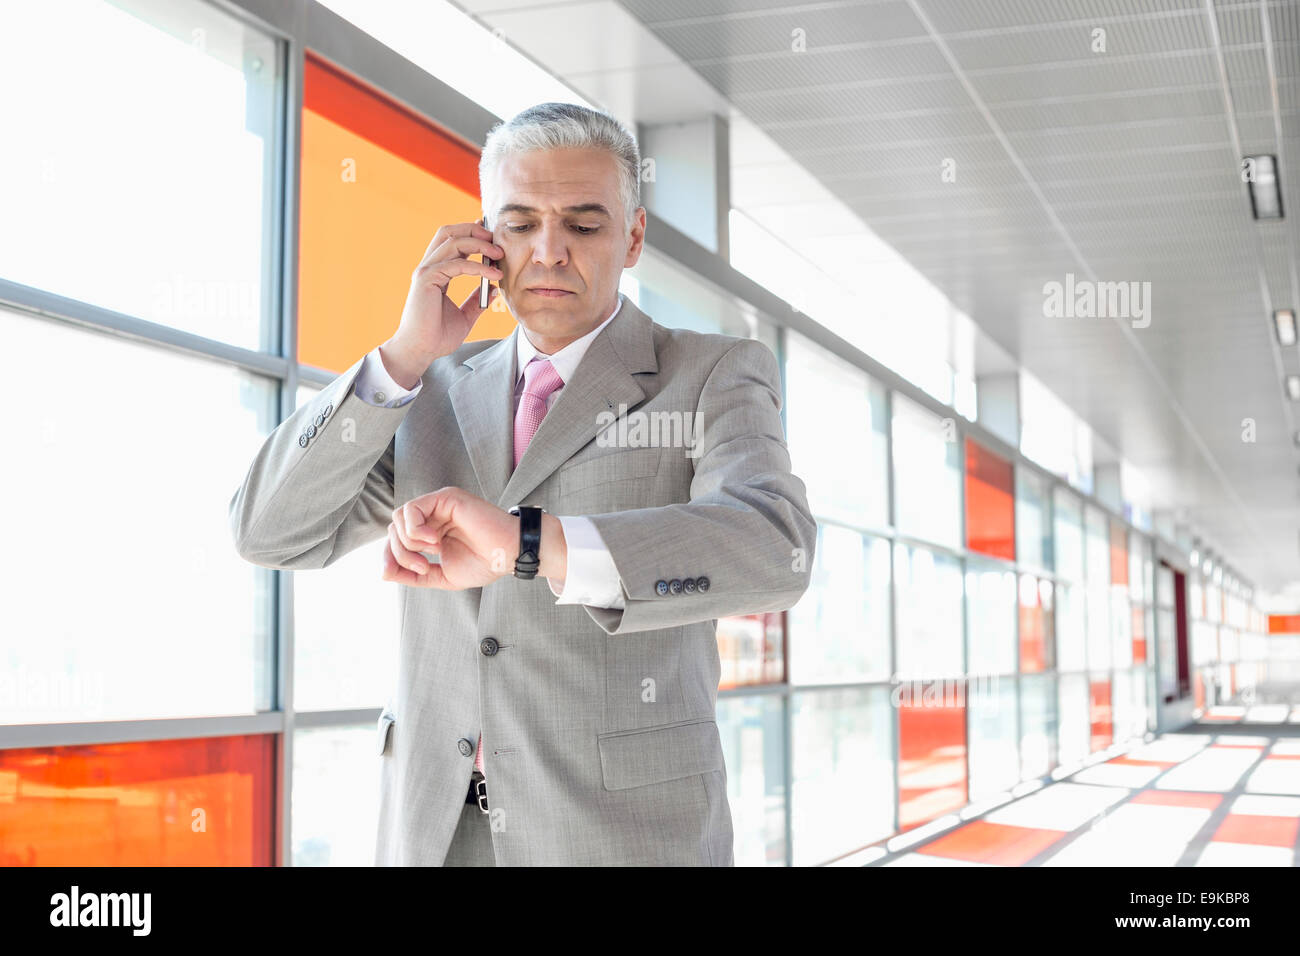 Middle aged businessman checking time while on call at railroad station - Stock Image